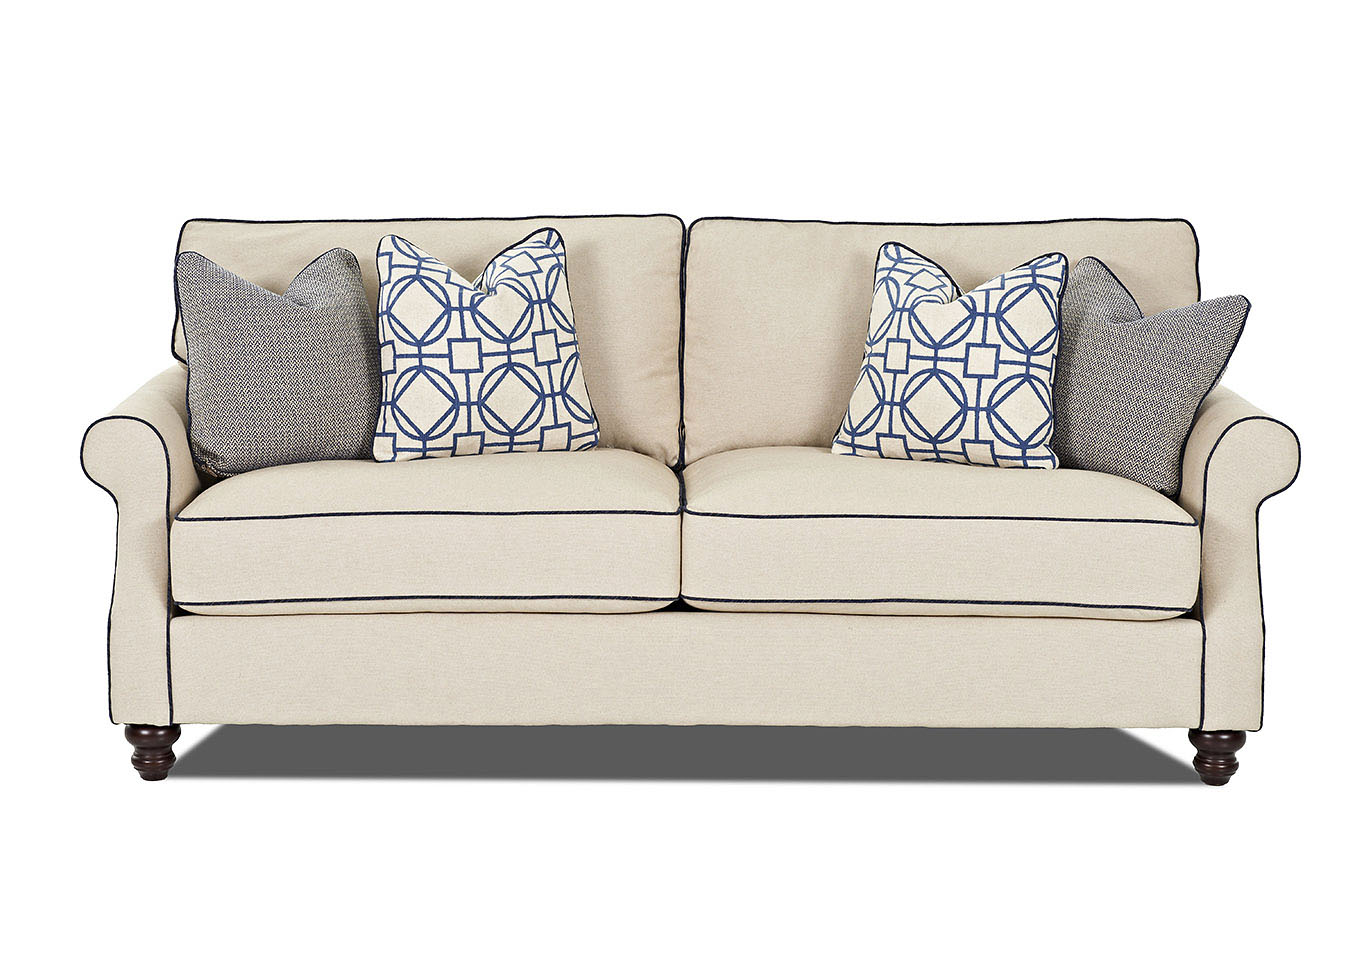 Tifton Trixie Linen Stationary Fabric Sofa,Klaussner Home Furnishings